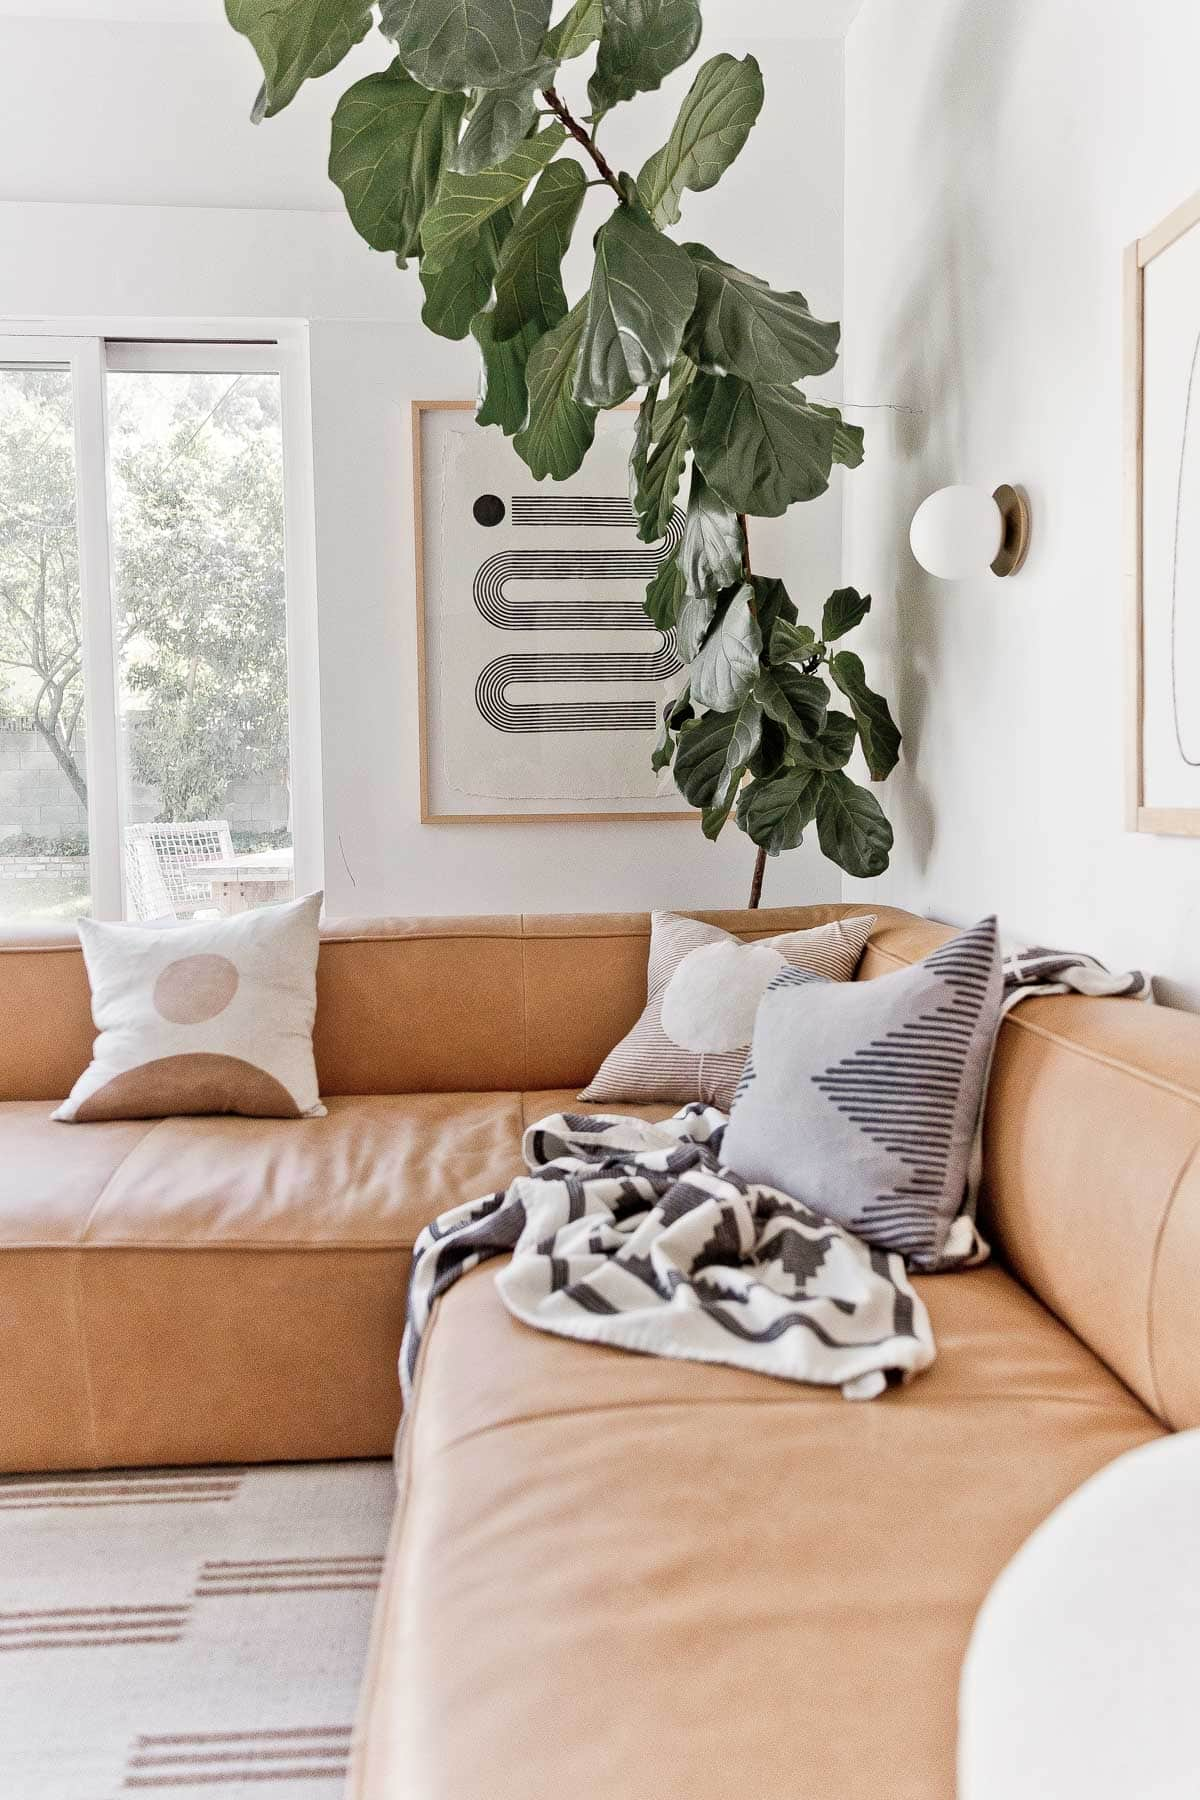 Black and white, modern abstract artwork hanging in a living room with a large fiddle leaf fig tree.